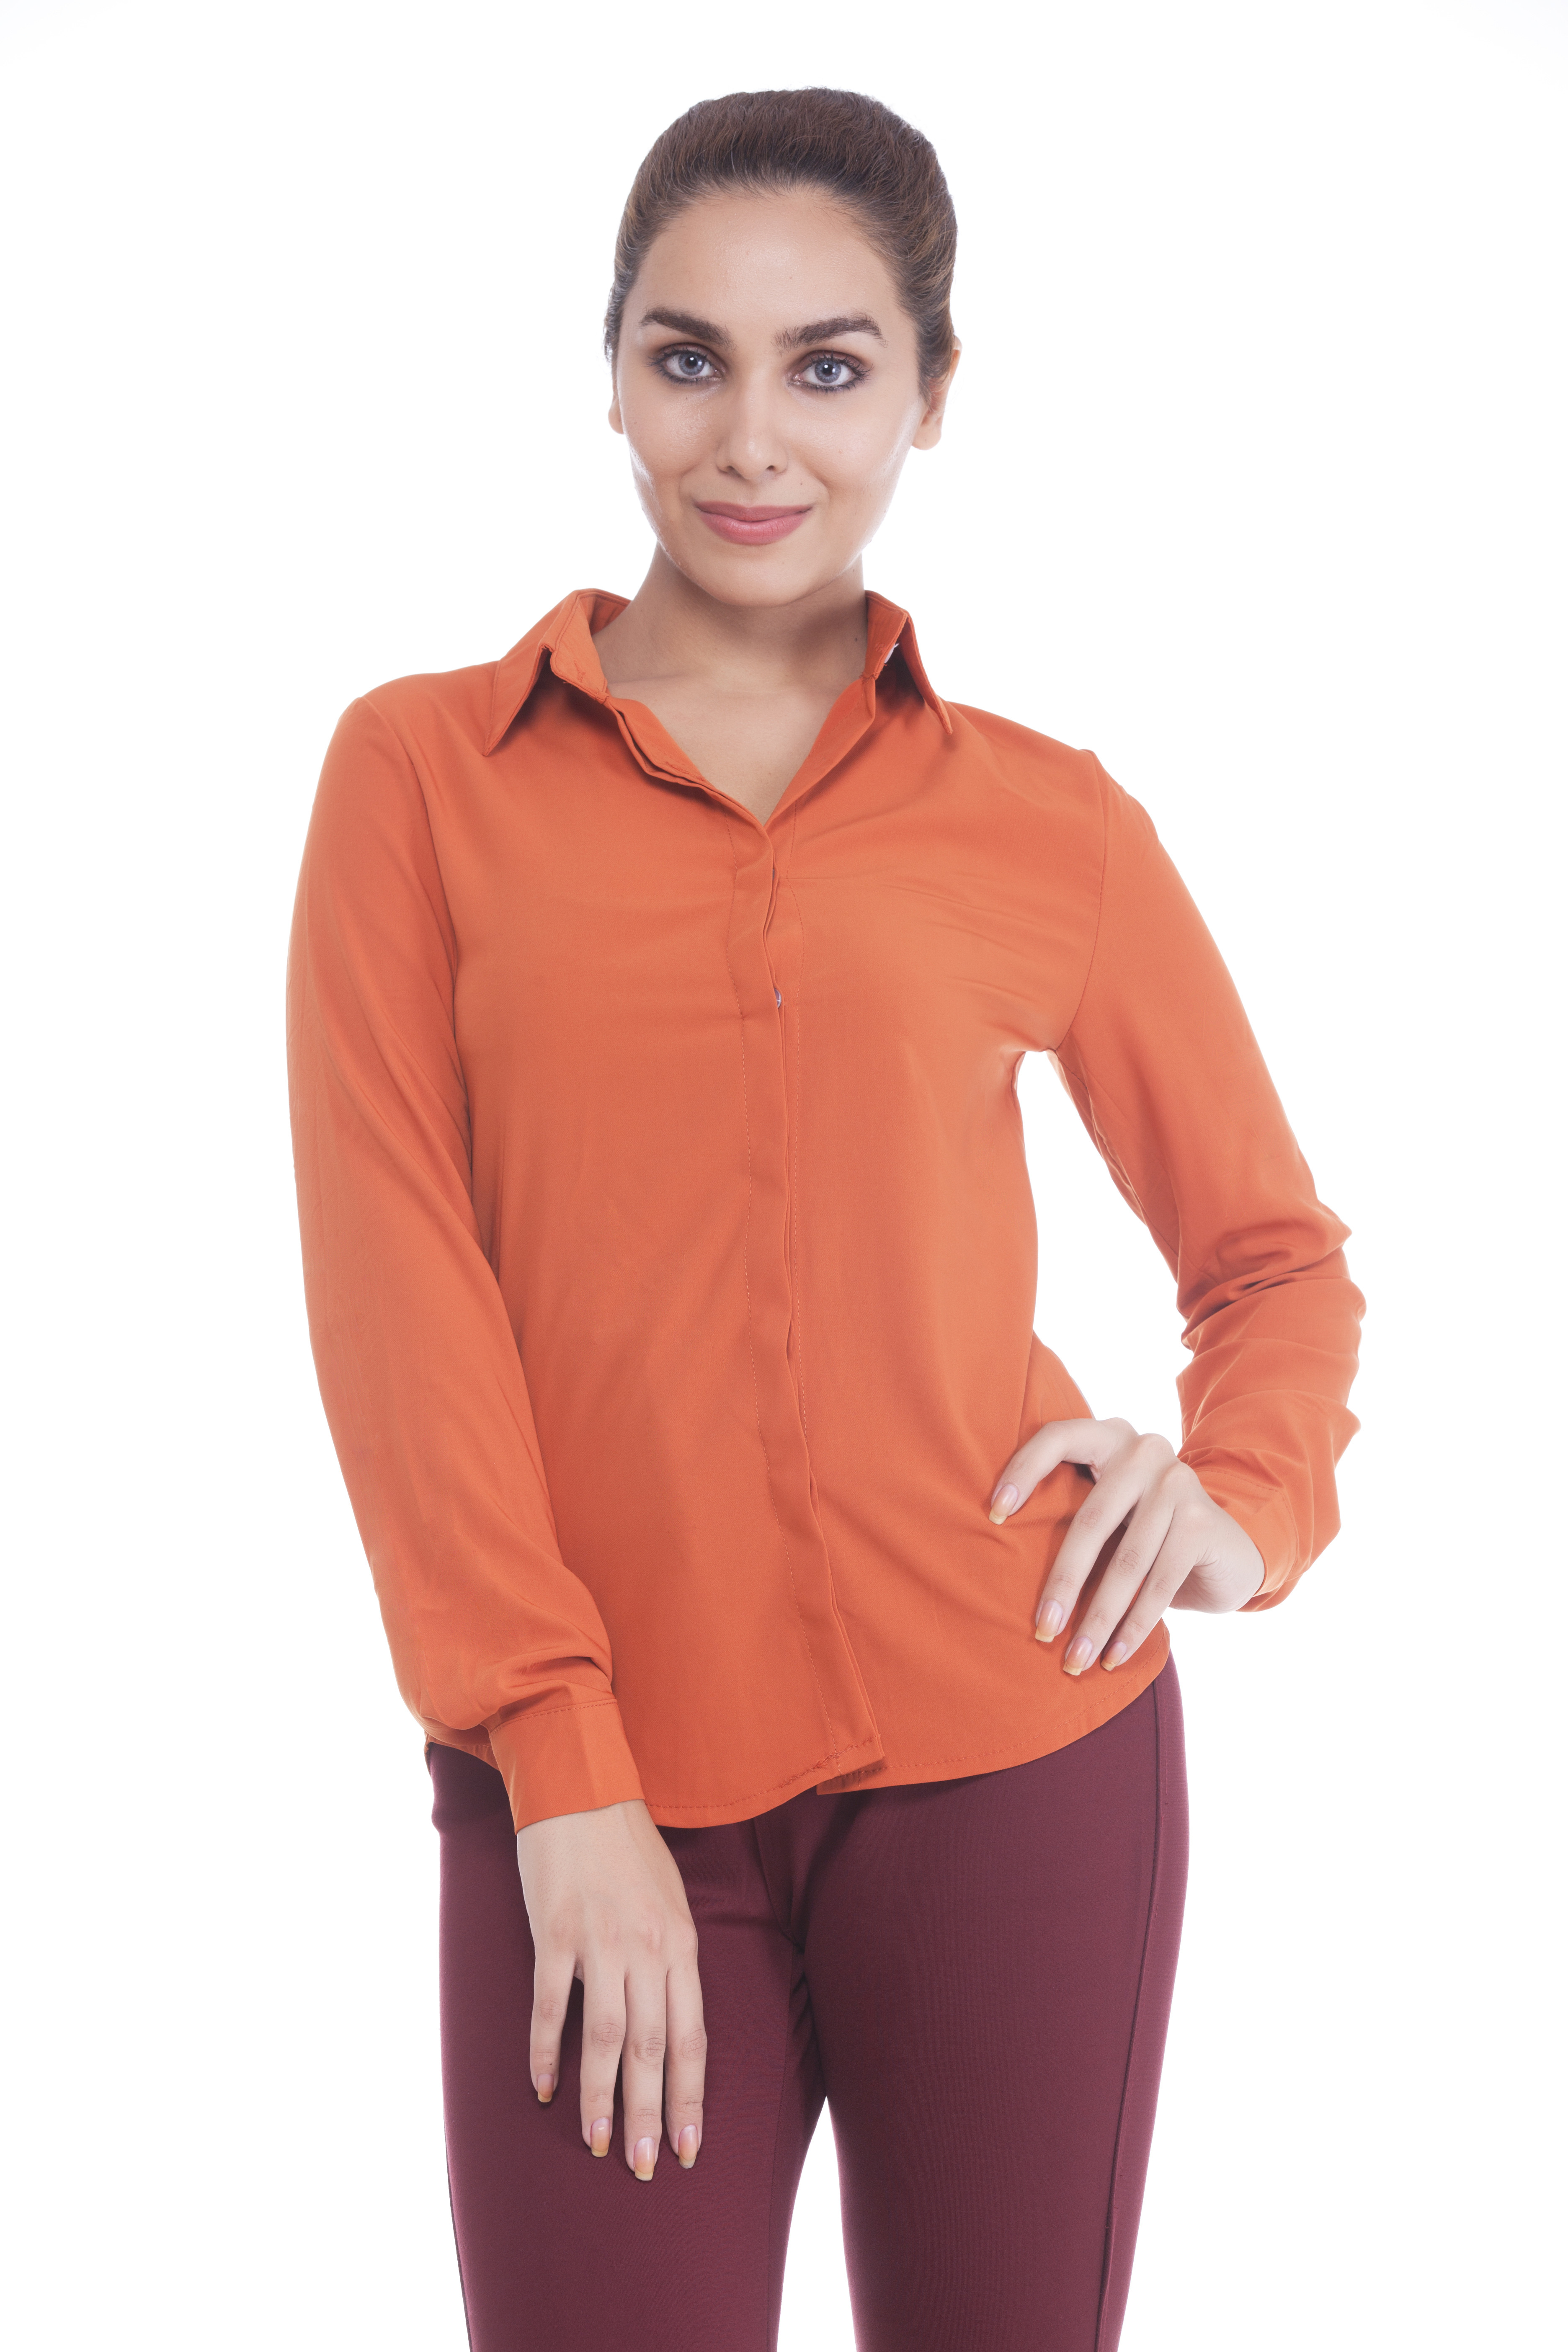 Revoure Women's Solid Formal Orange Shirt